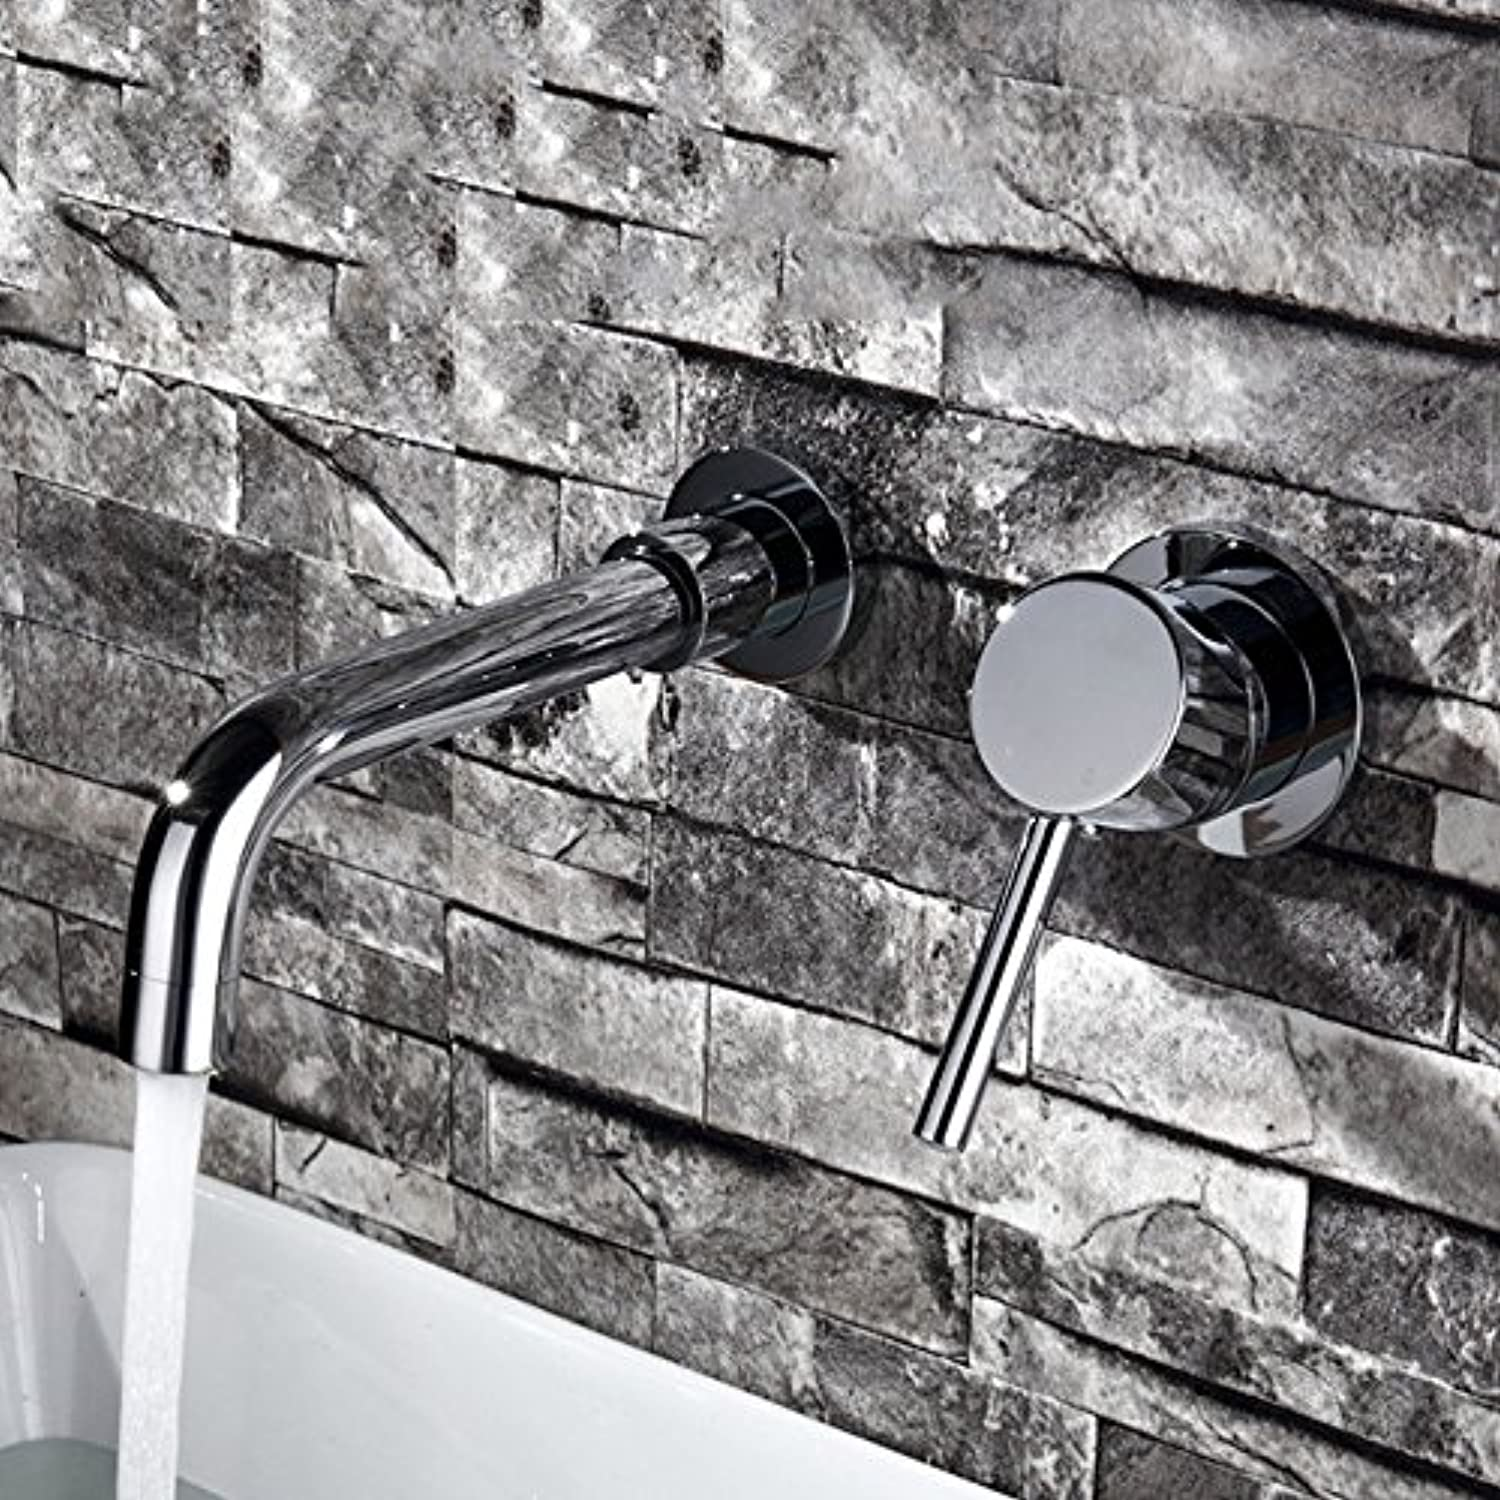 LHbox Basin Mixer Tap Bathroom Sink Faucet The copper into the wall mounted basin Bathroom Cabinet basin basin pre-laying cold and hot water tap,)